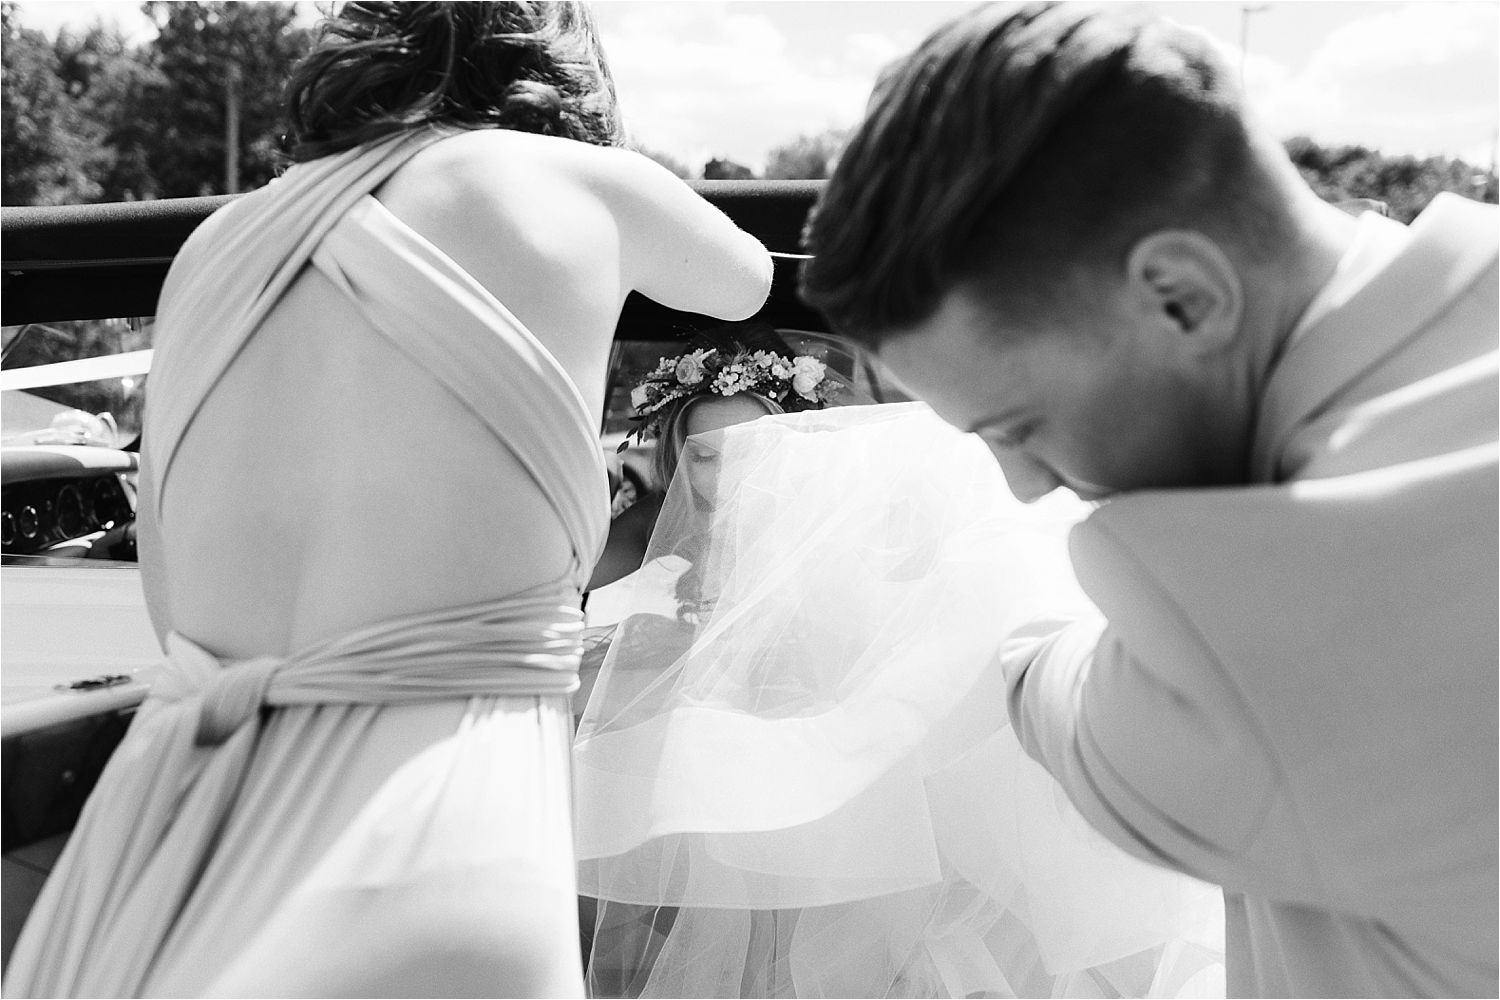 Bridesmaid and usher help bride out of car, holding net of her dress.